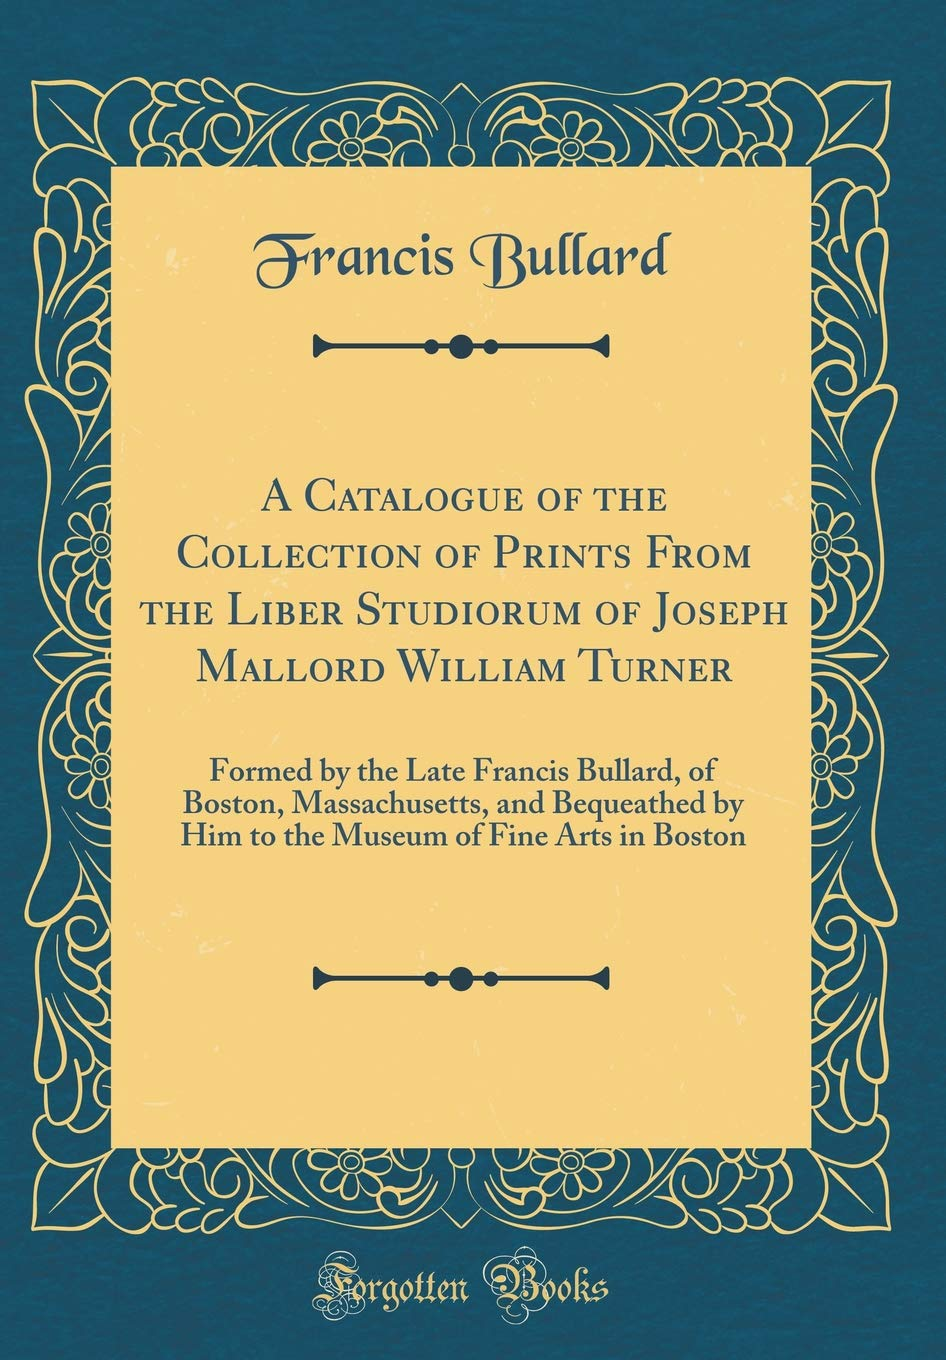 Download A Catalogue of the Collection of Prints from the Liber Studiorum of Joseph Mallord William Turner: Formed by the Late Francis Bullard, of Boston, ... of Fine Arts in Boston (Classic Reprint) ebook